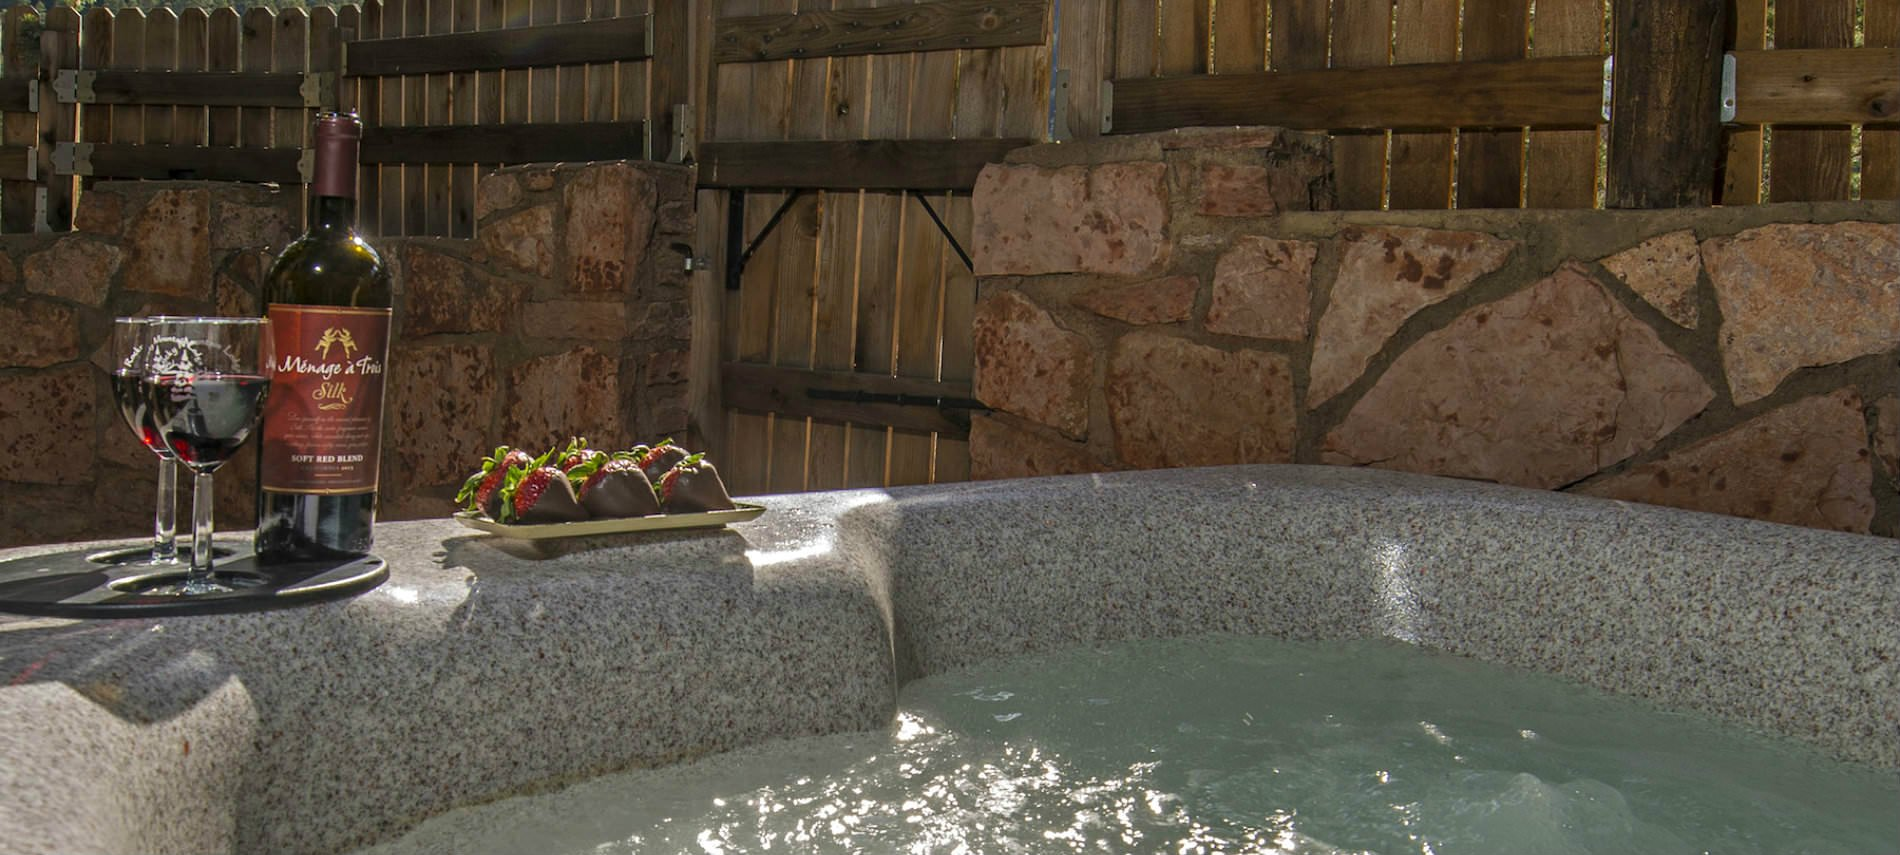 Hot tub in private space with wood fence and champagne on the side.